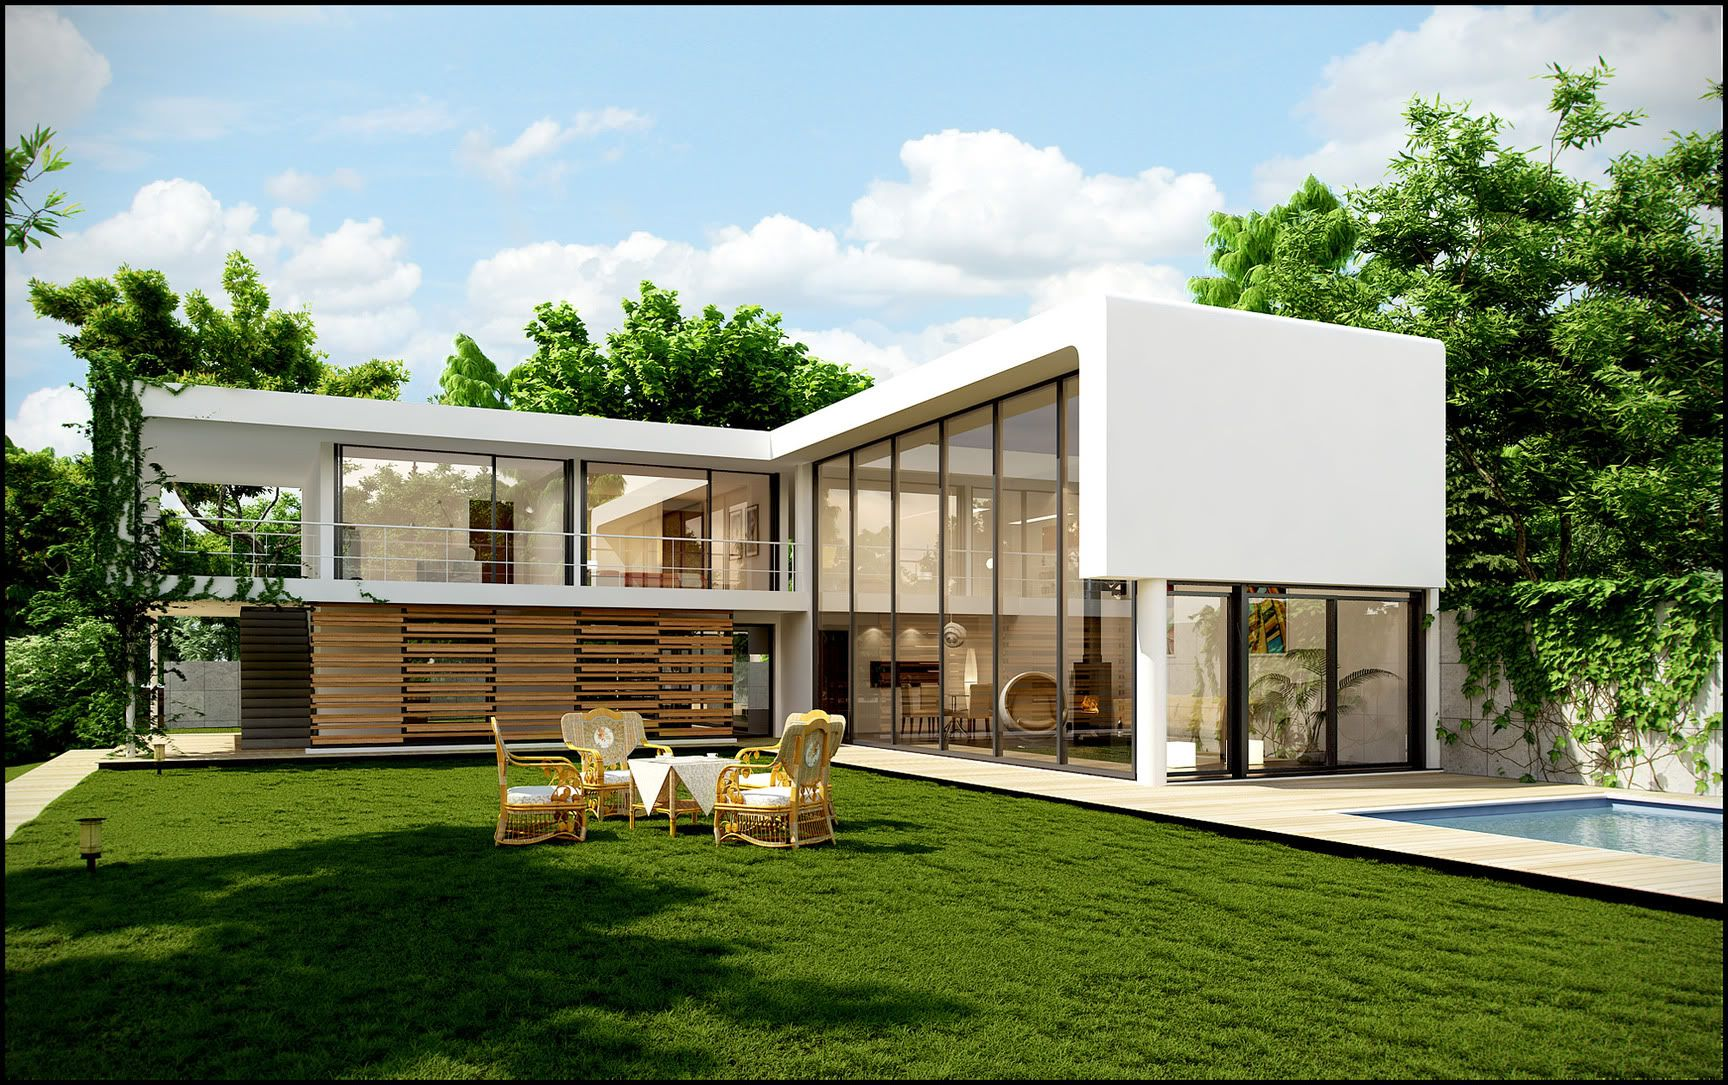 Architecture exterior impressive l shape small modern for Small modern home plans